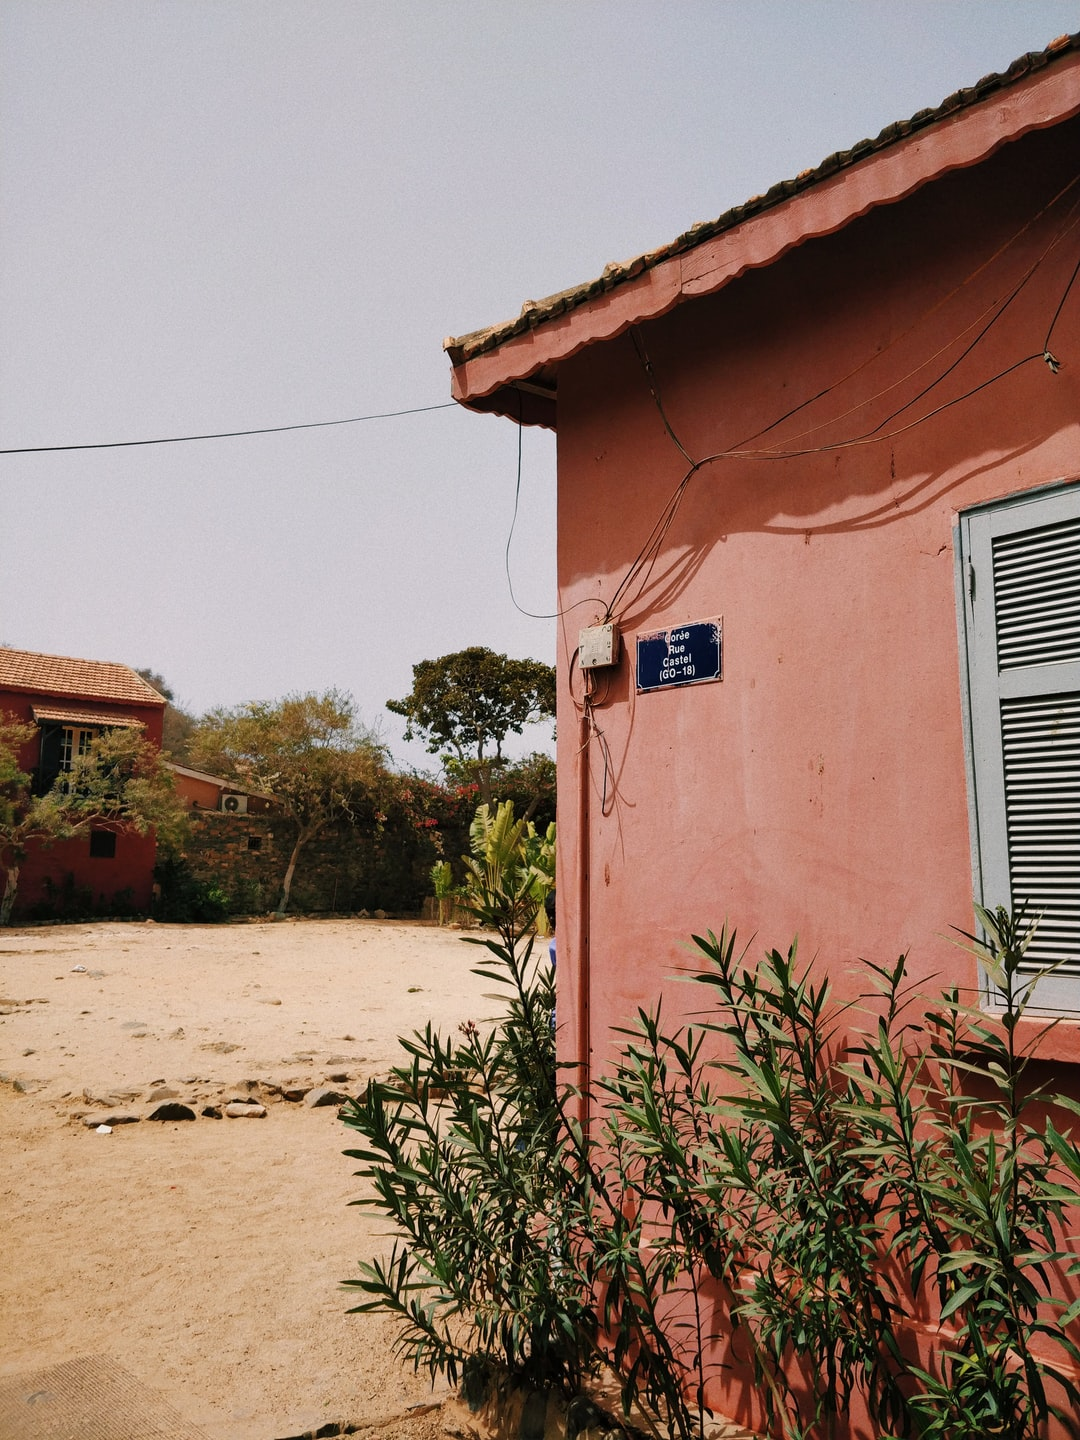 This remarkable painted house is only one of the little gems of Île de Gorée, Dakar, Senegal.